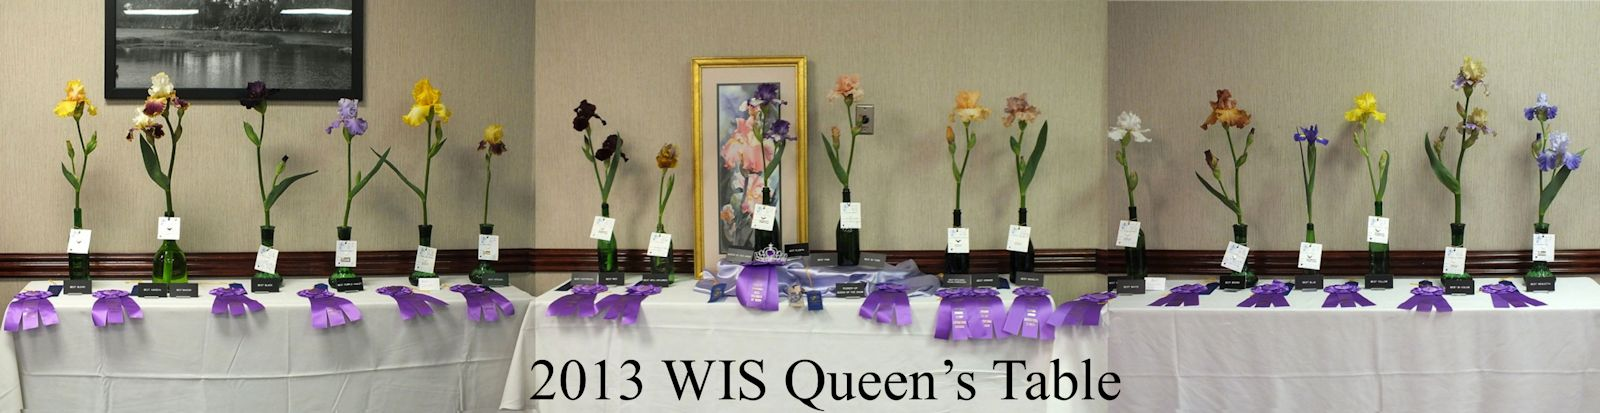 2013 Queen's Table